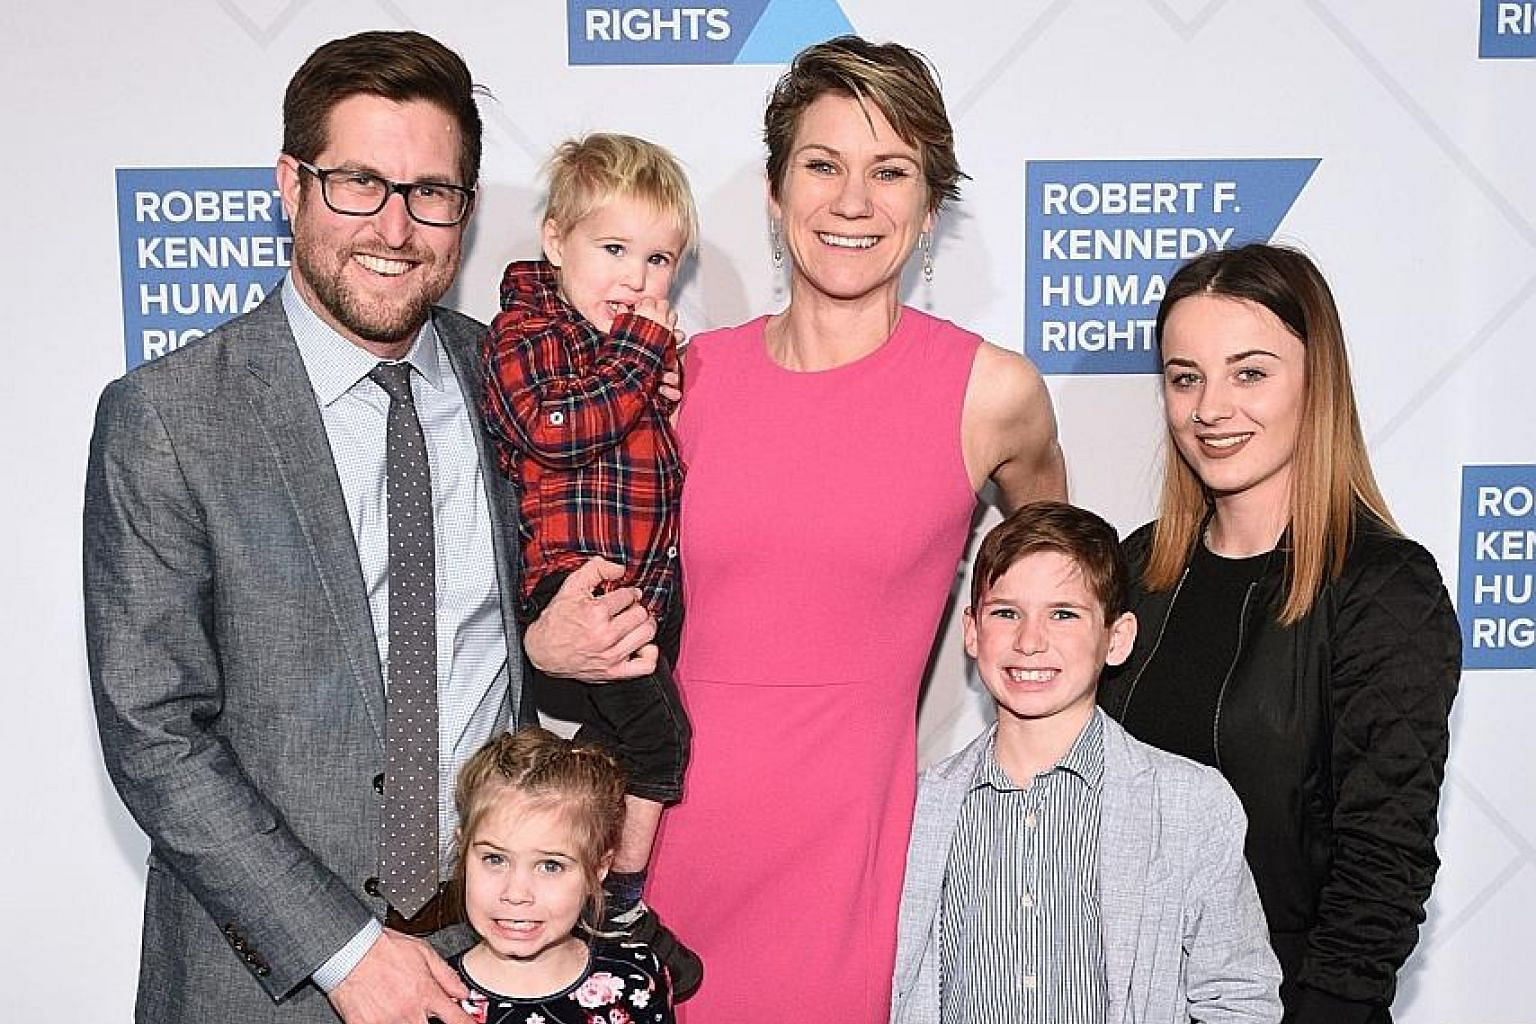 Mrs Maeve Kennedy Townsend McKean, 40, and eight-year-old son Gideon with family at an event in New York City last December. The mother and son, last seen on Thursday, had paddled out in a canoe to retrieve a ball that went into the Chesapeake Bay in